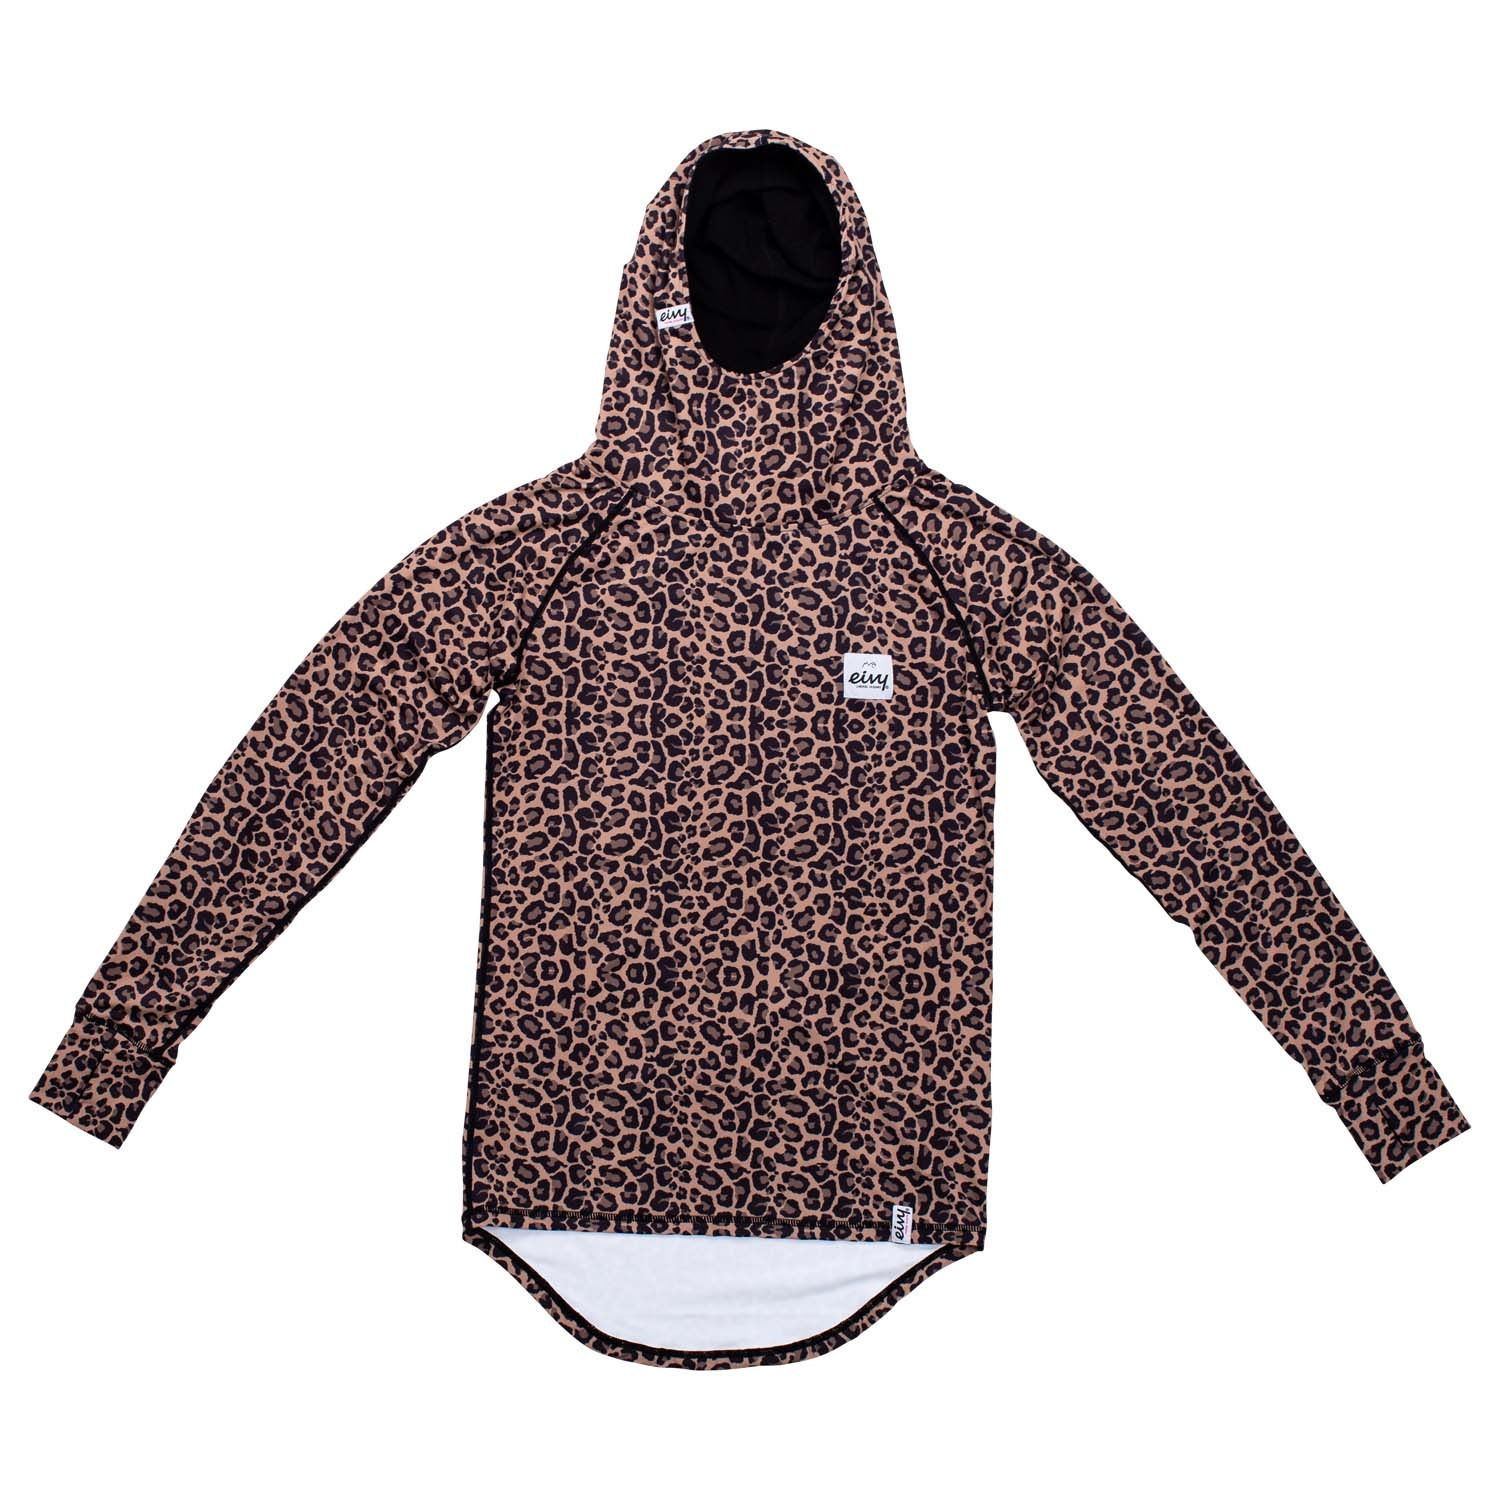 Eivy Icecold Hooded Top Baselayer Leopard 2020